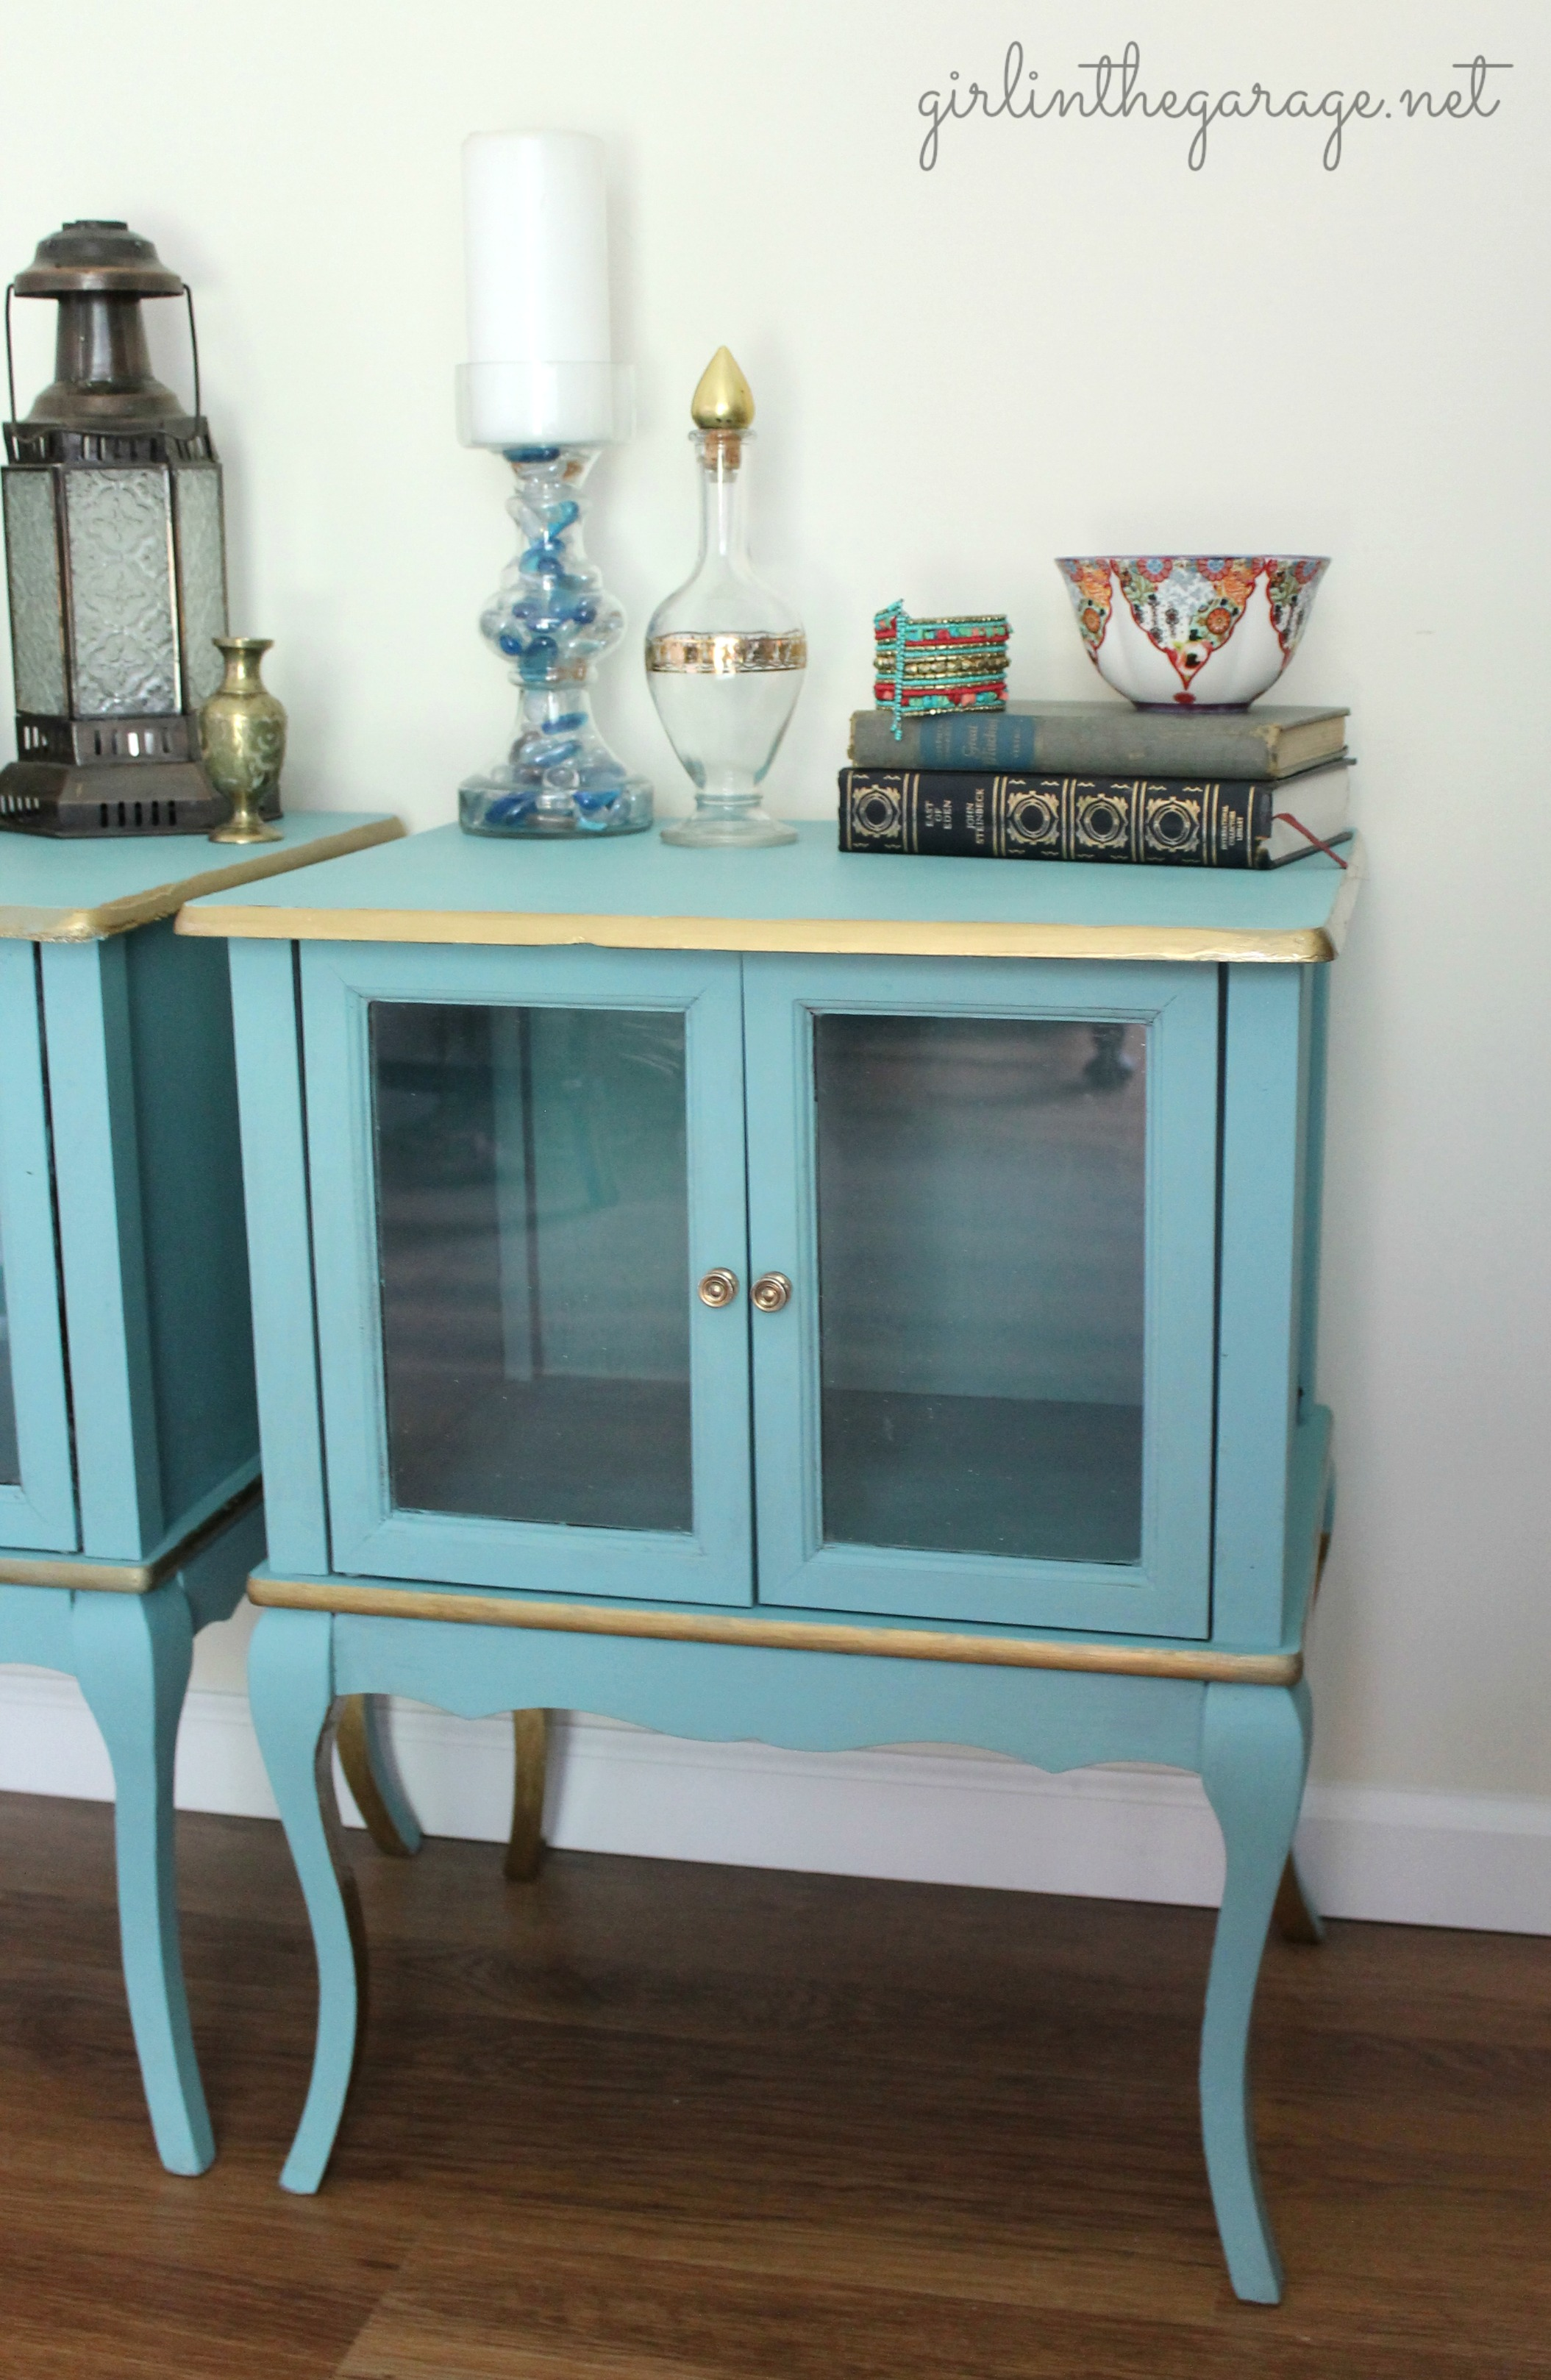 24 Ideas For Small Table Makeovers Girl In The Garage 174